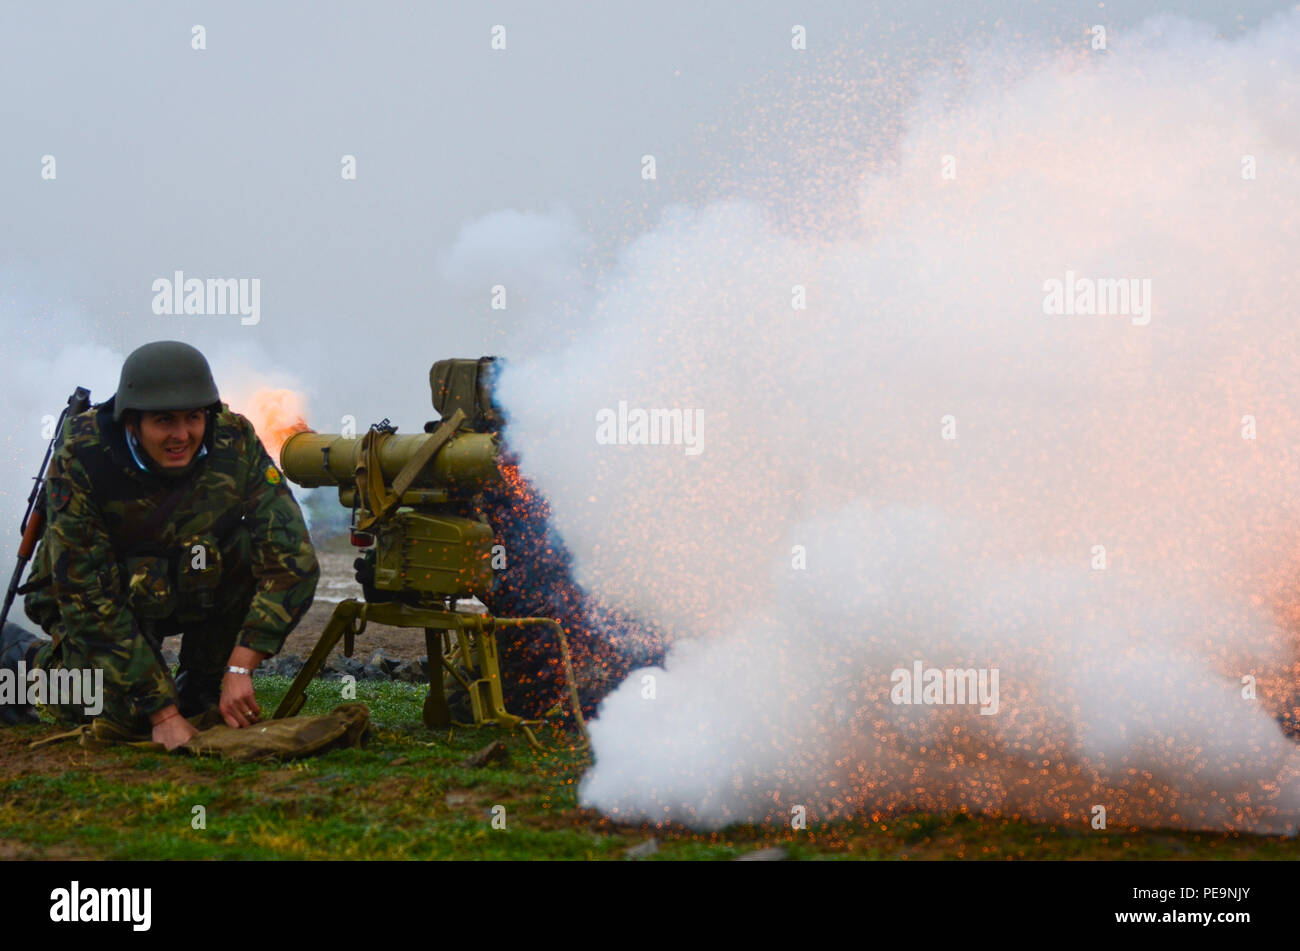 A Bulgarian soldier of 1-61st Mechanized Battalion fires a smoke cap out of a 9M111M Faktoria anti-tank guided missile launcher during Exercise Peace Sentinel at Novo Selo Training Center, Bulgaria, Nov. 24, 2015. (U.S. Army photo by Staff Sgt. Steven M. Colvin/Released) - Stock Image